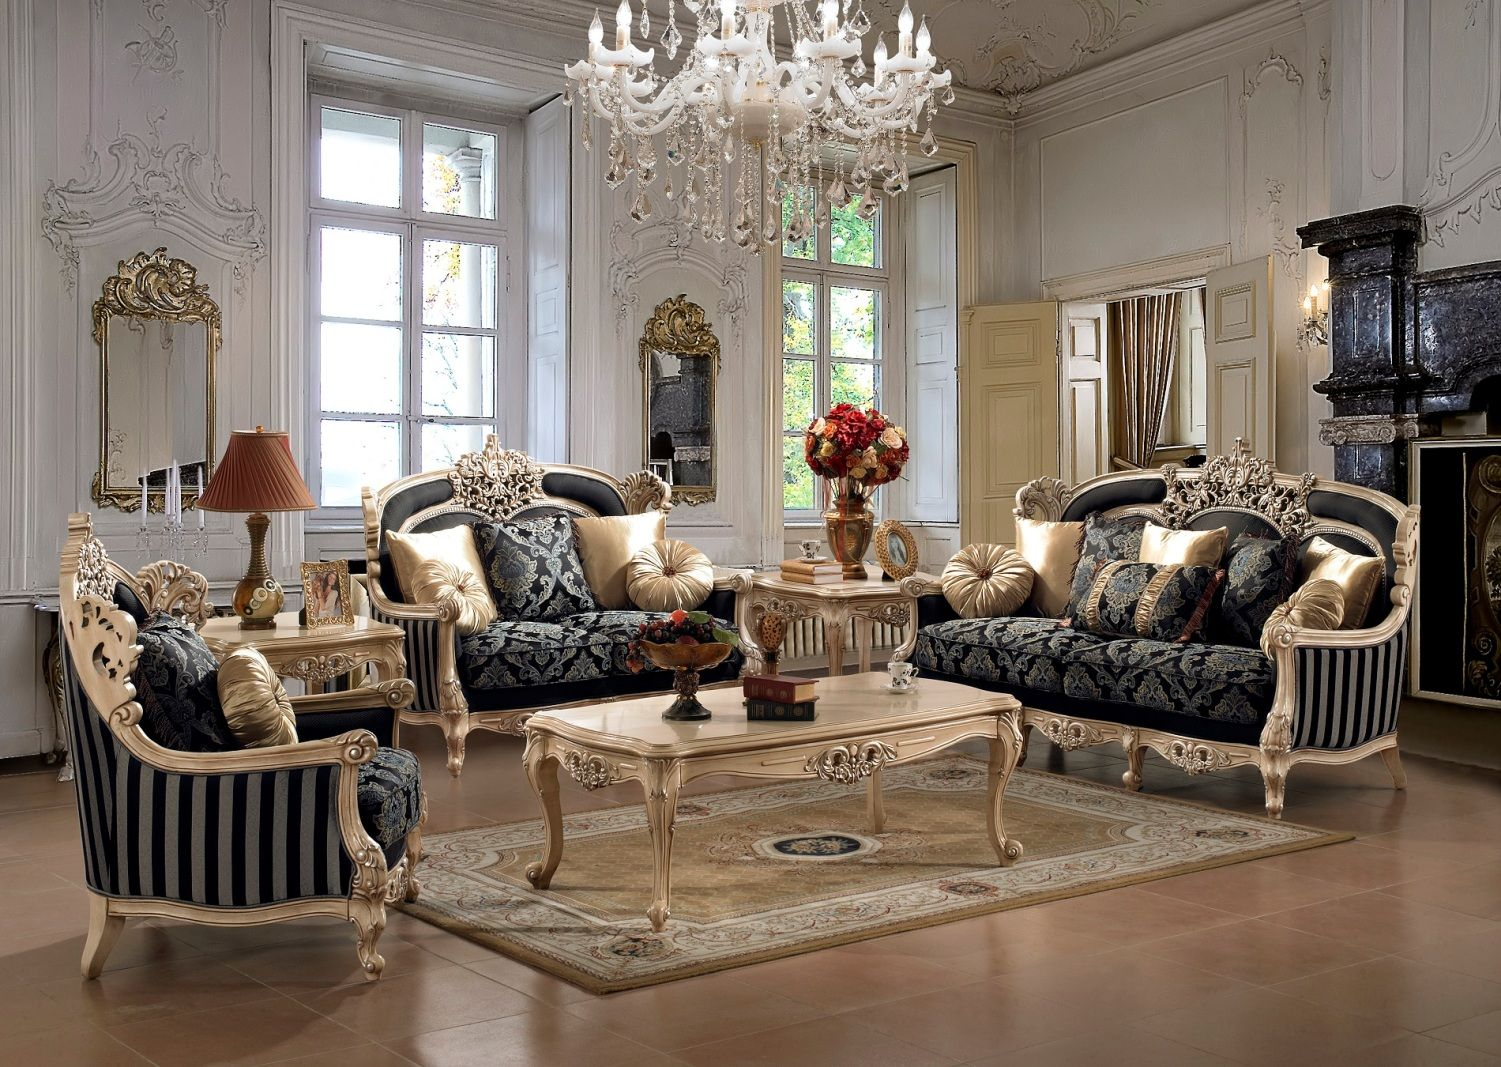 Official Sofas For Formal Areas And Elegant Living Rooms Luxury Furniture Living Room Elegant Living Room Furniture Living Room Sets Furniture